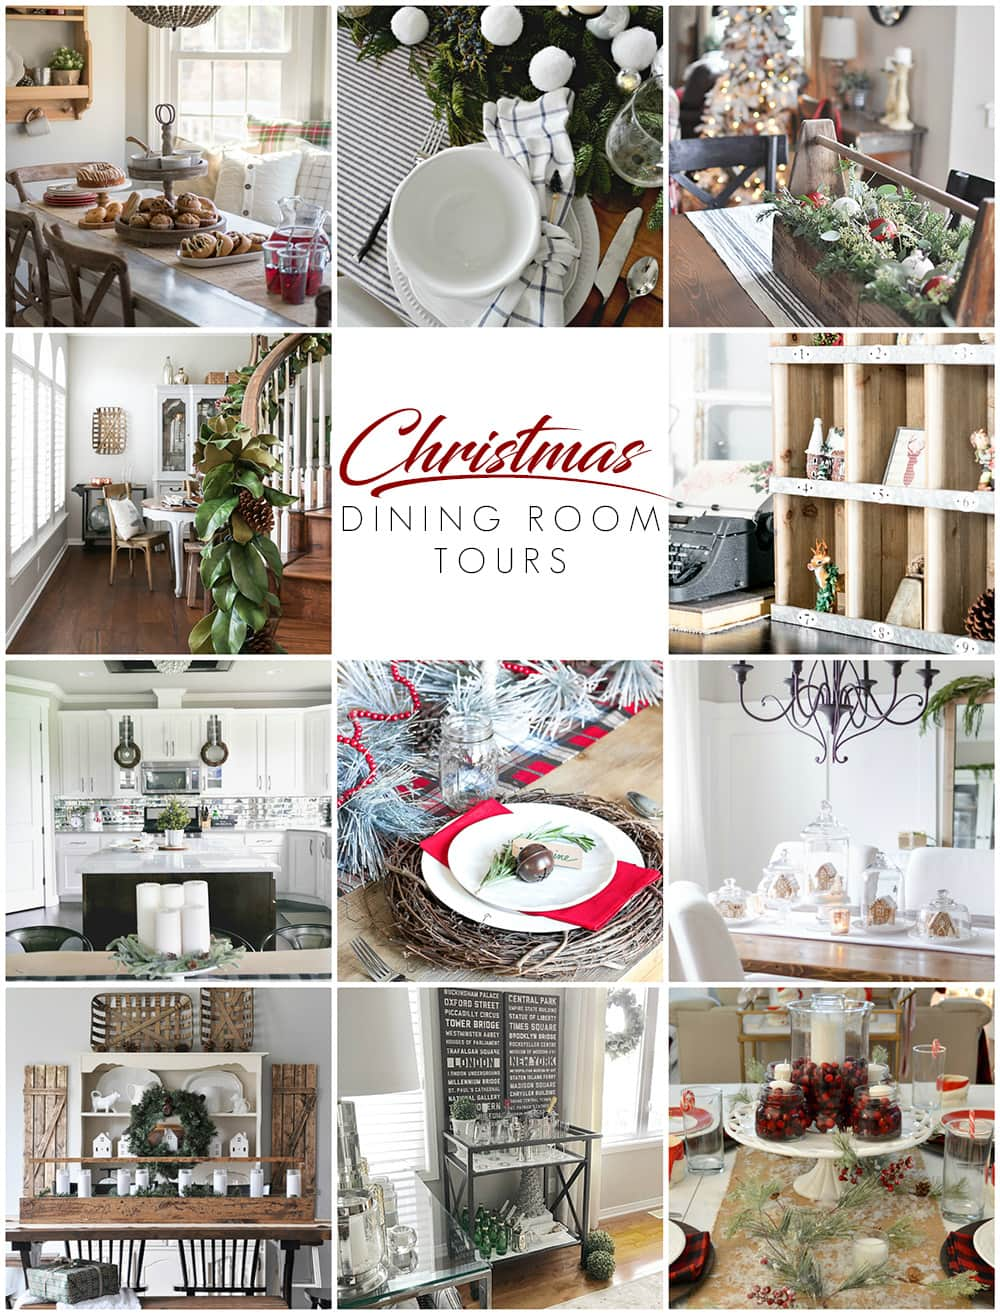 Beautiful dining rooms decorated for the holidays... so many Christmas dining room decorating ideas!